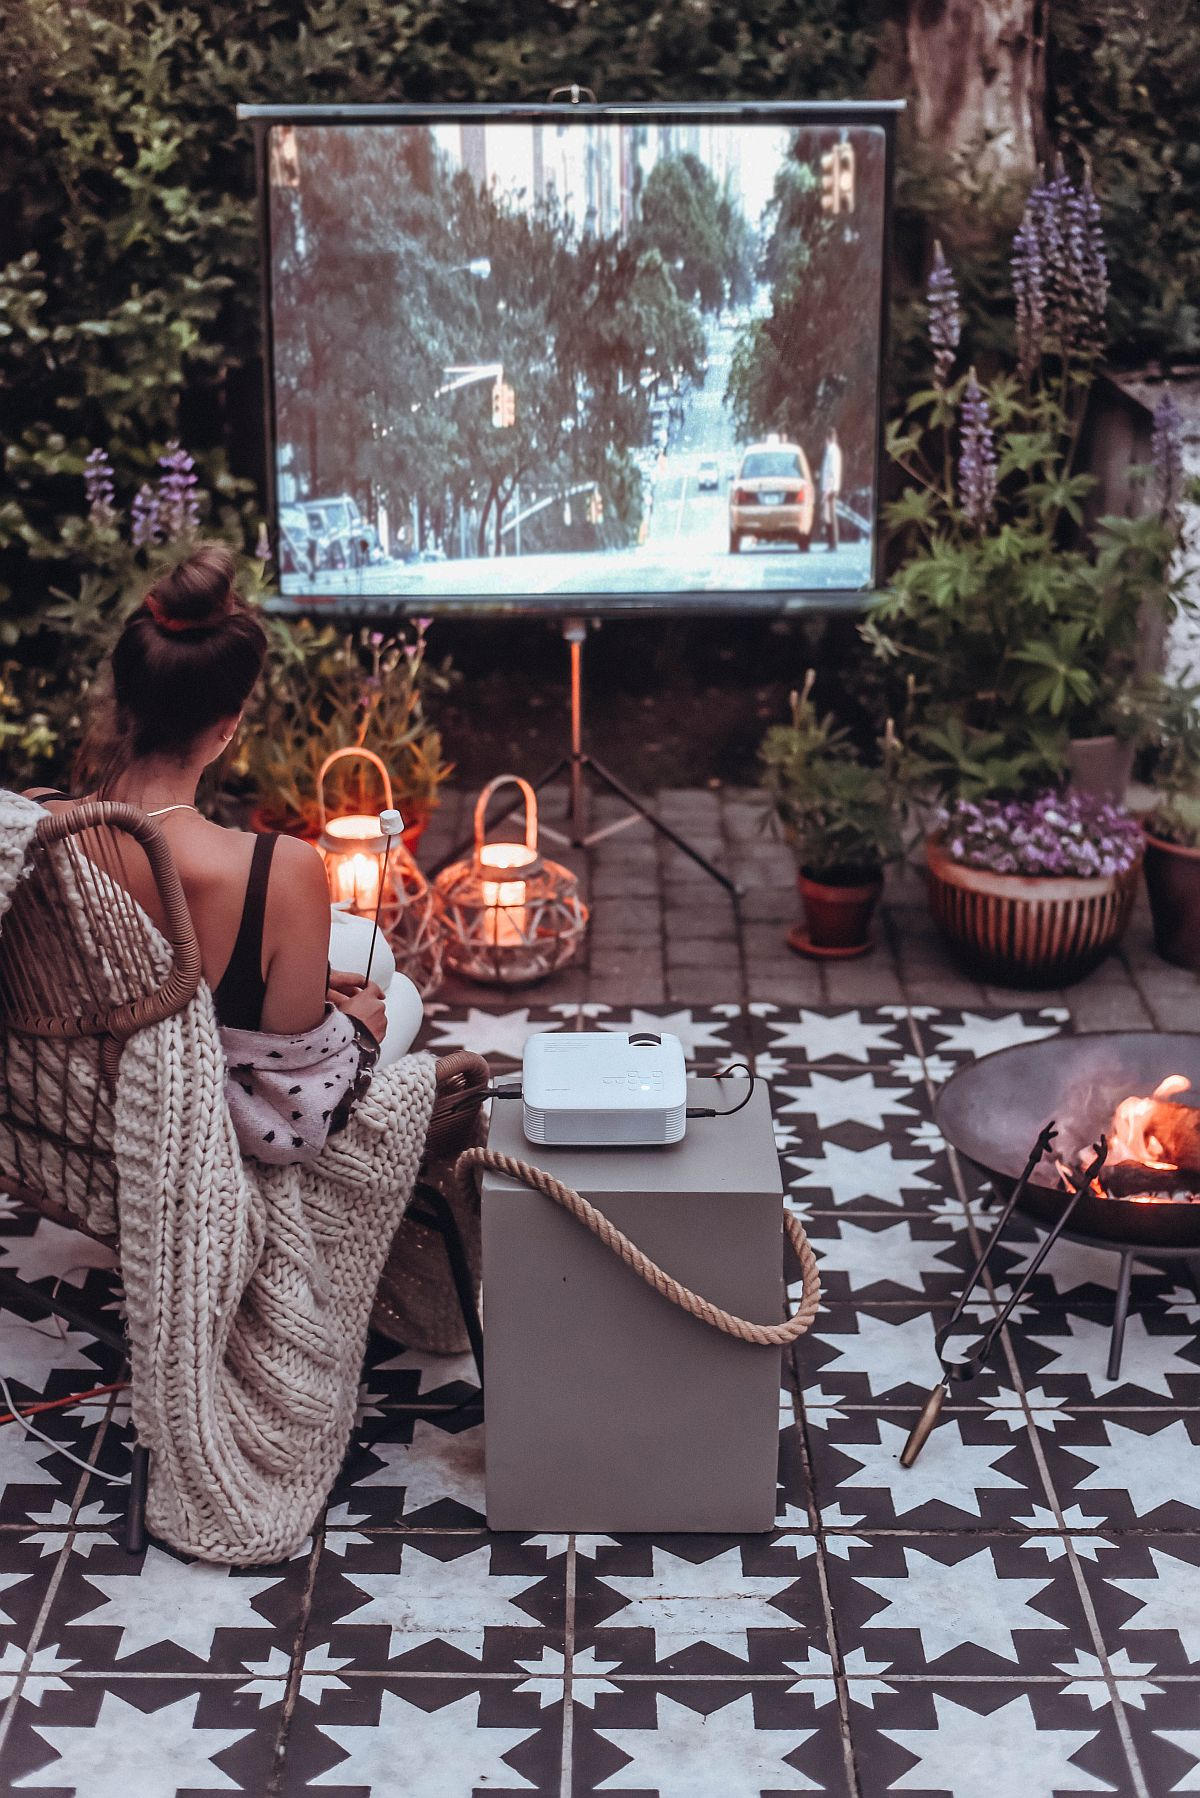 Budget, dreamy outdoor cinema crafted in a limited space